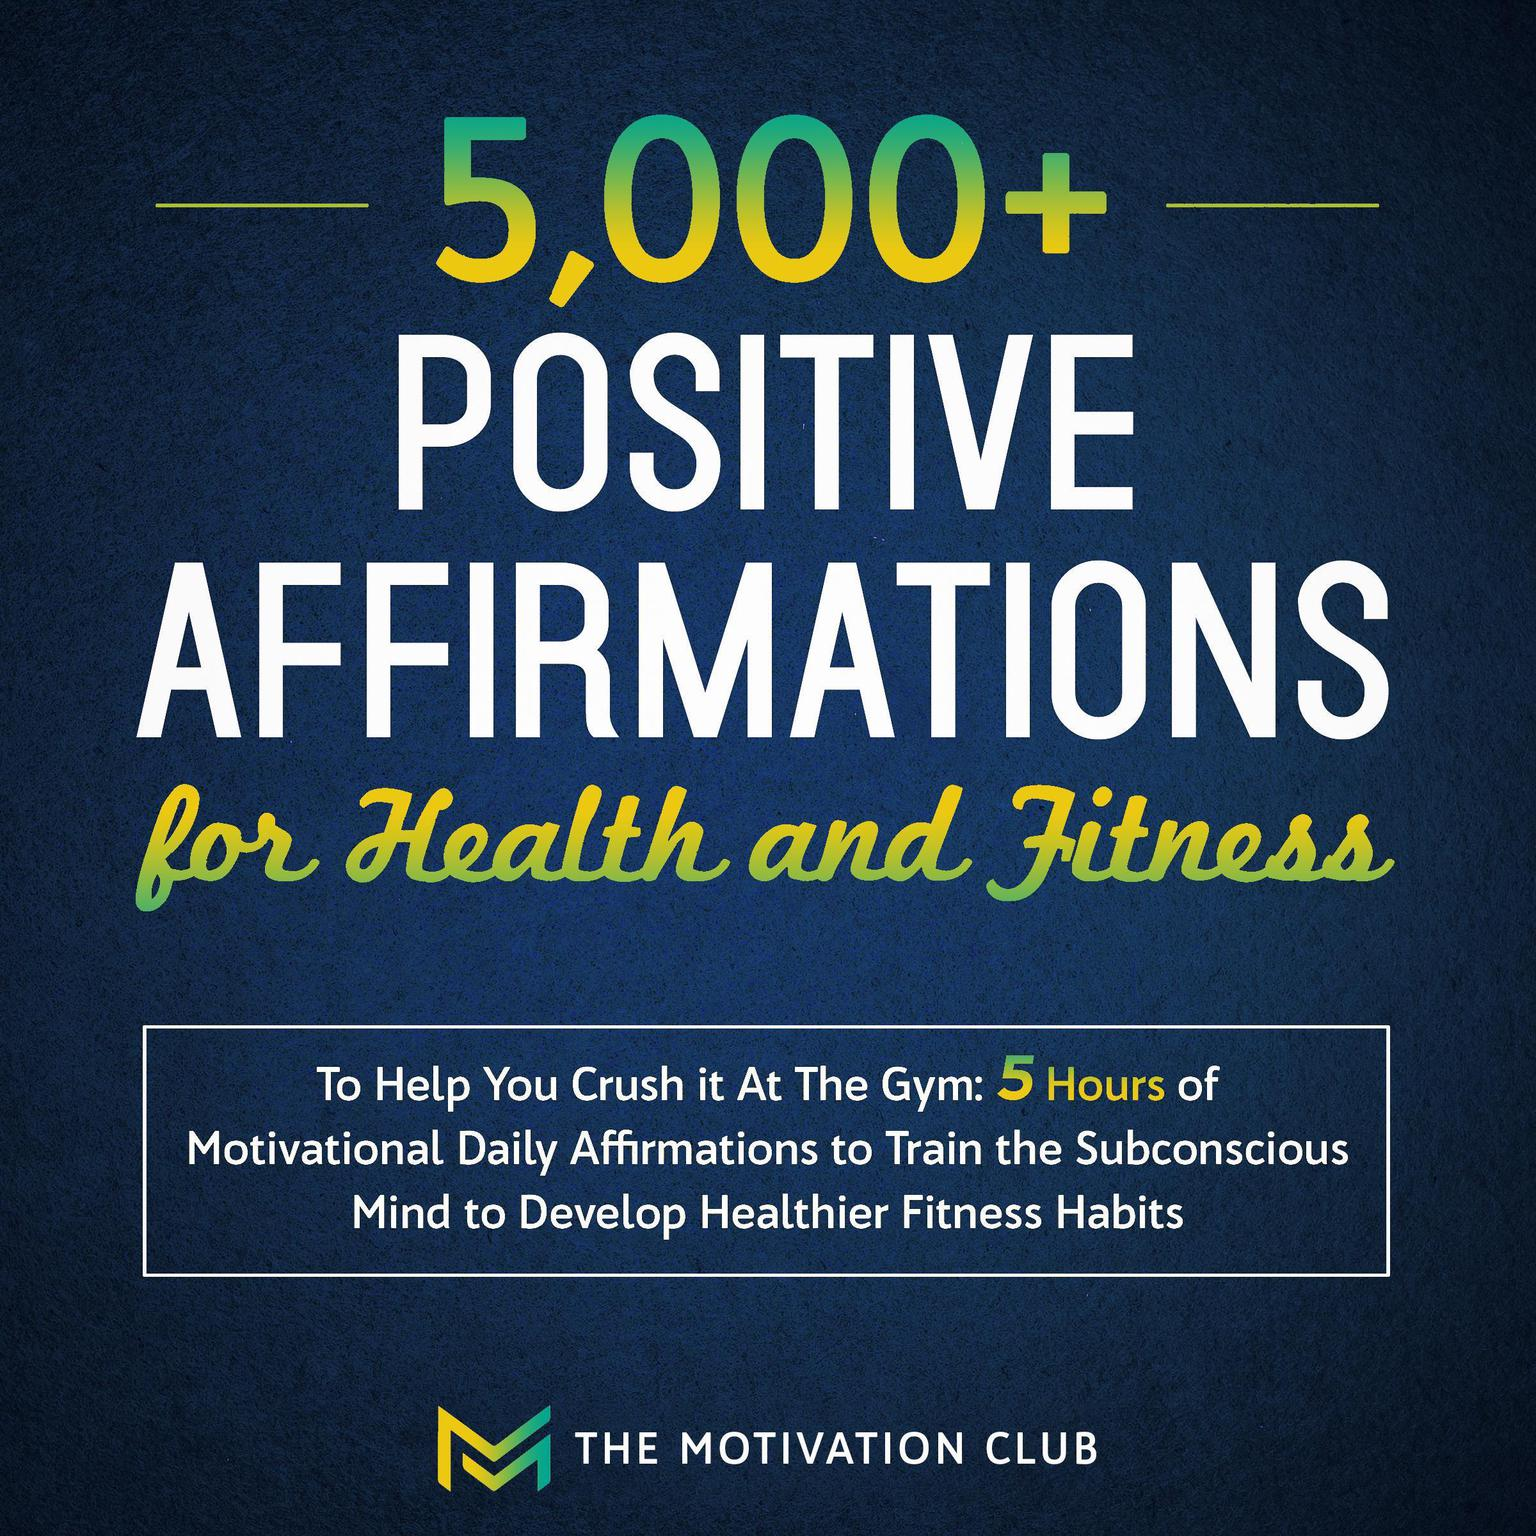 5,000+ Positive Affirmations for Health and Fitness to Help You Crush It at the Gym: 5 Hours of Motivational Daily Affirmations to Train the Subconscious Mind to Develop Healthier Fitness Habits Audiobook, by The Motivation Club